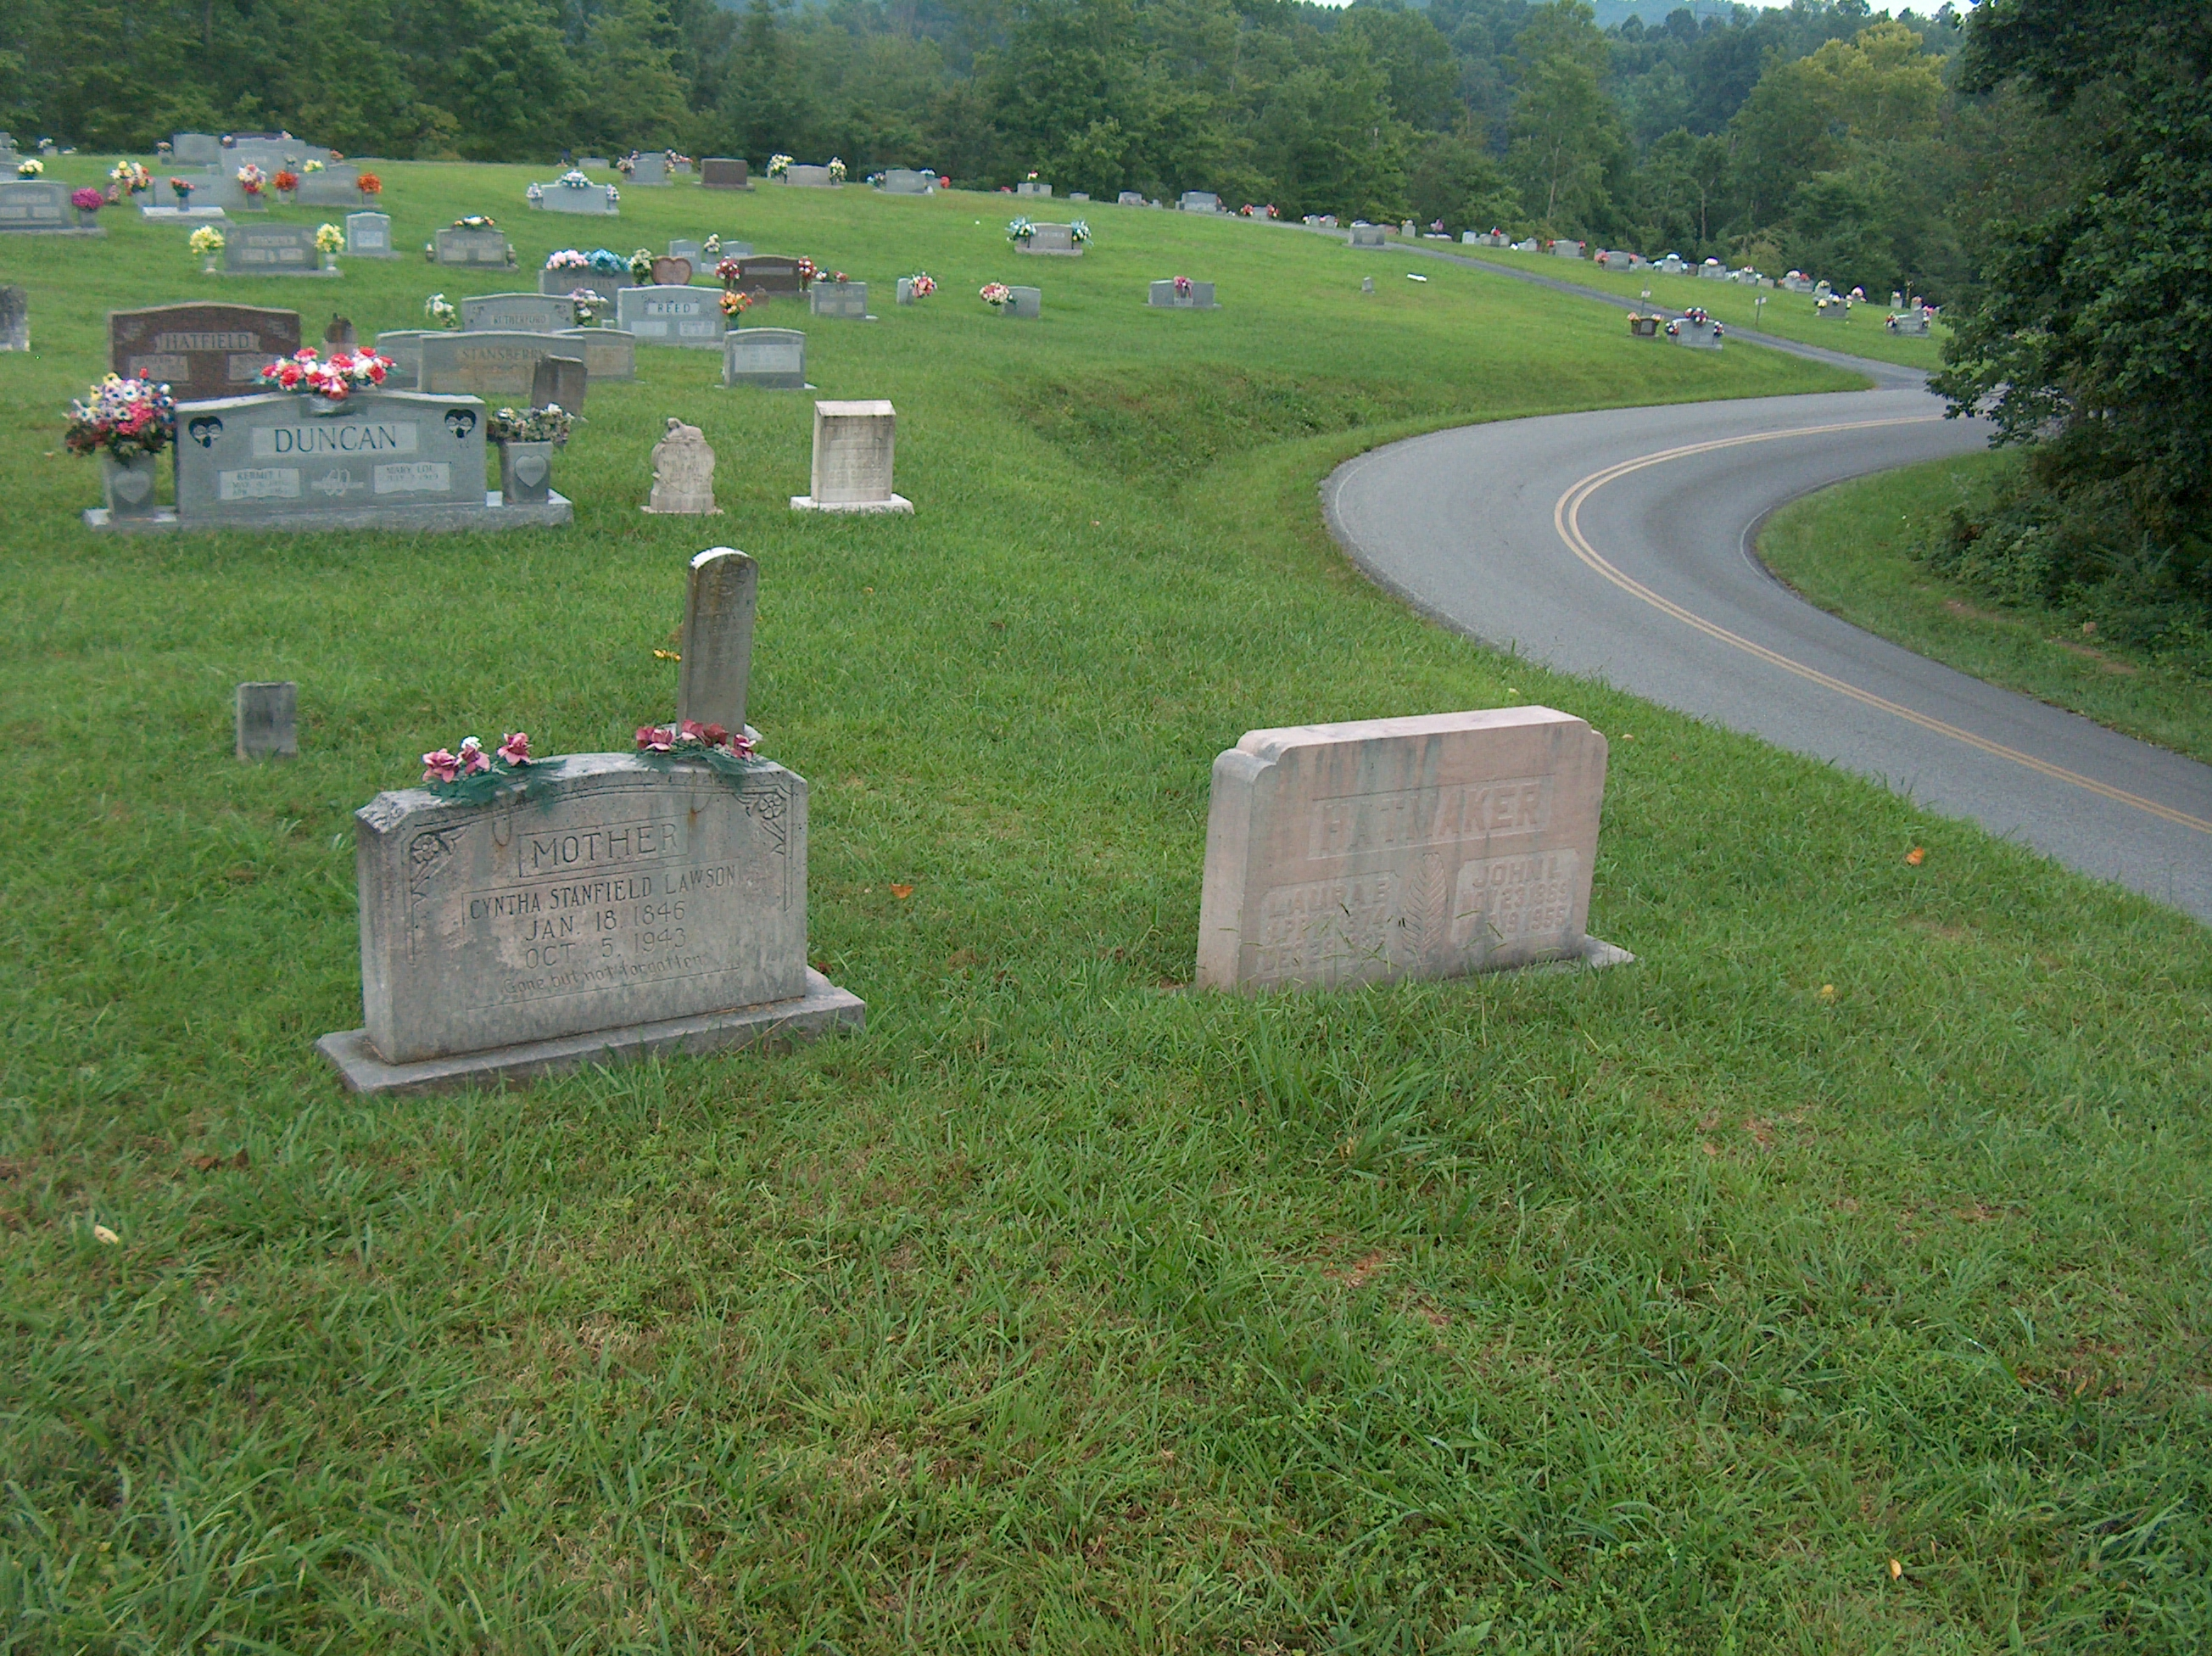 Sometimes family members are buried near each other. In this case, Cyntha is Laura's mother.